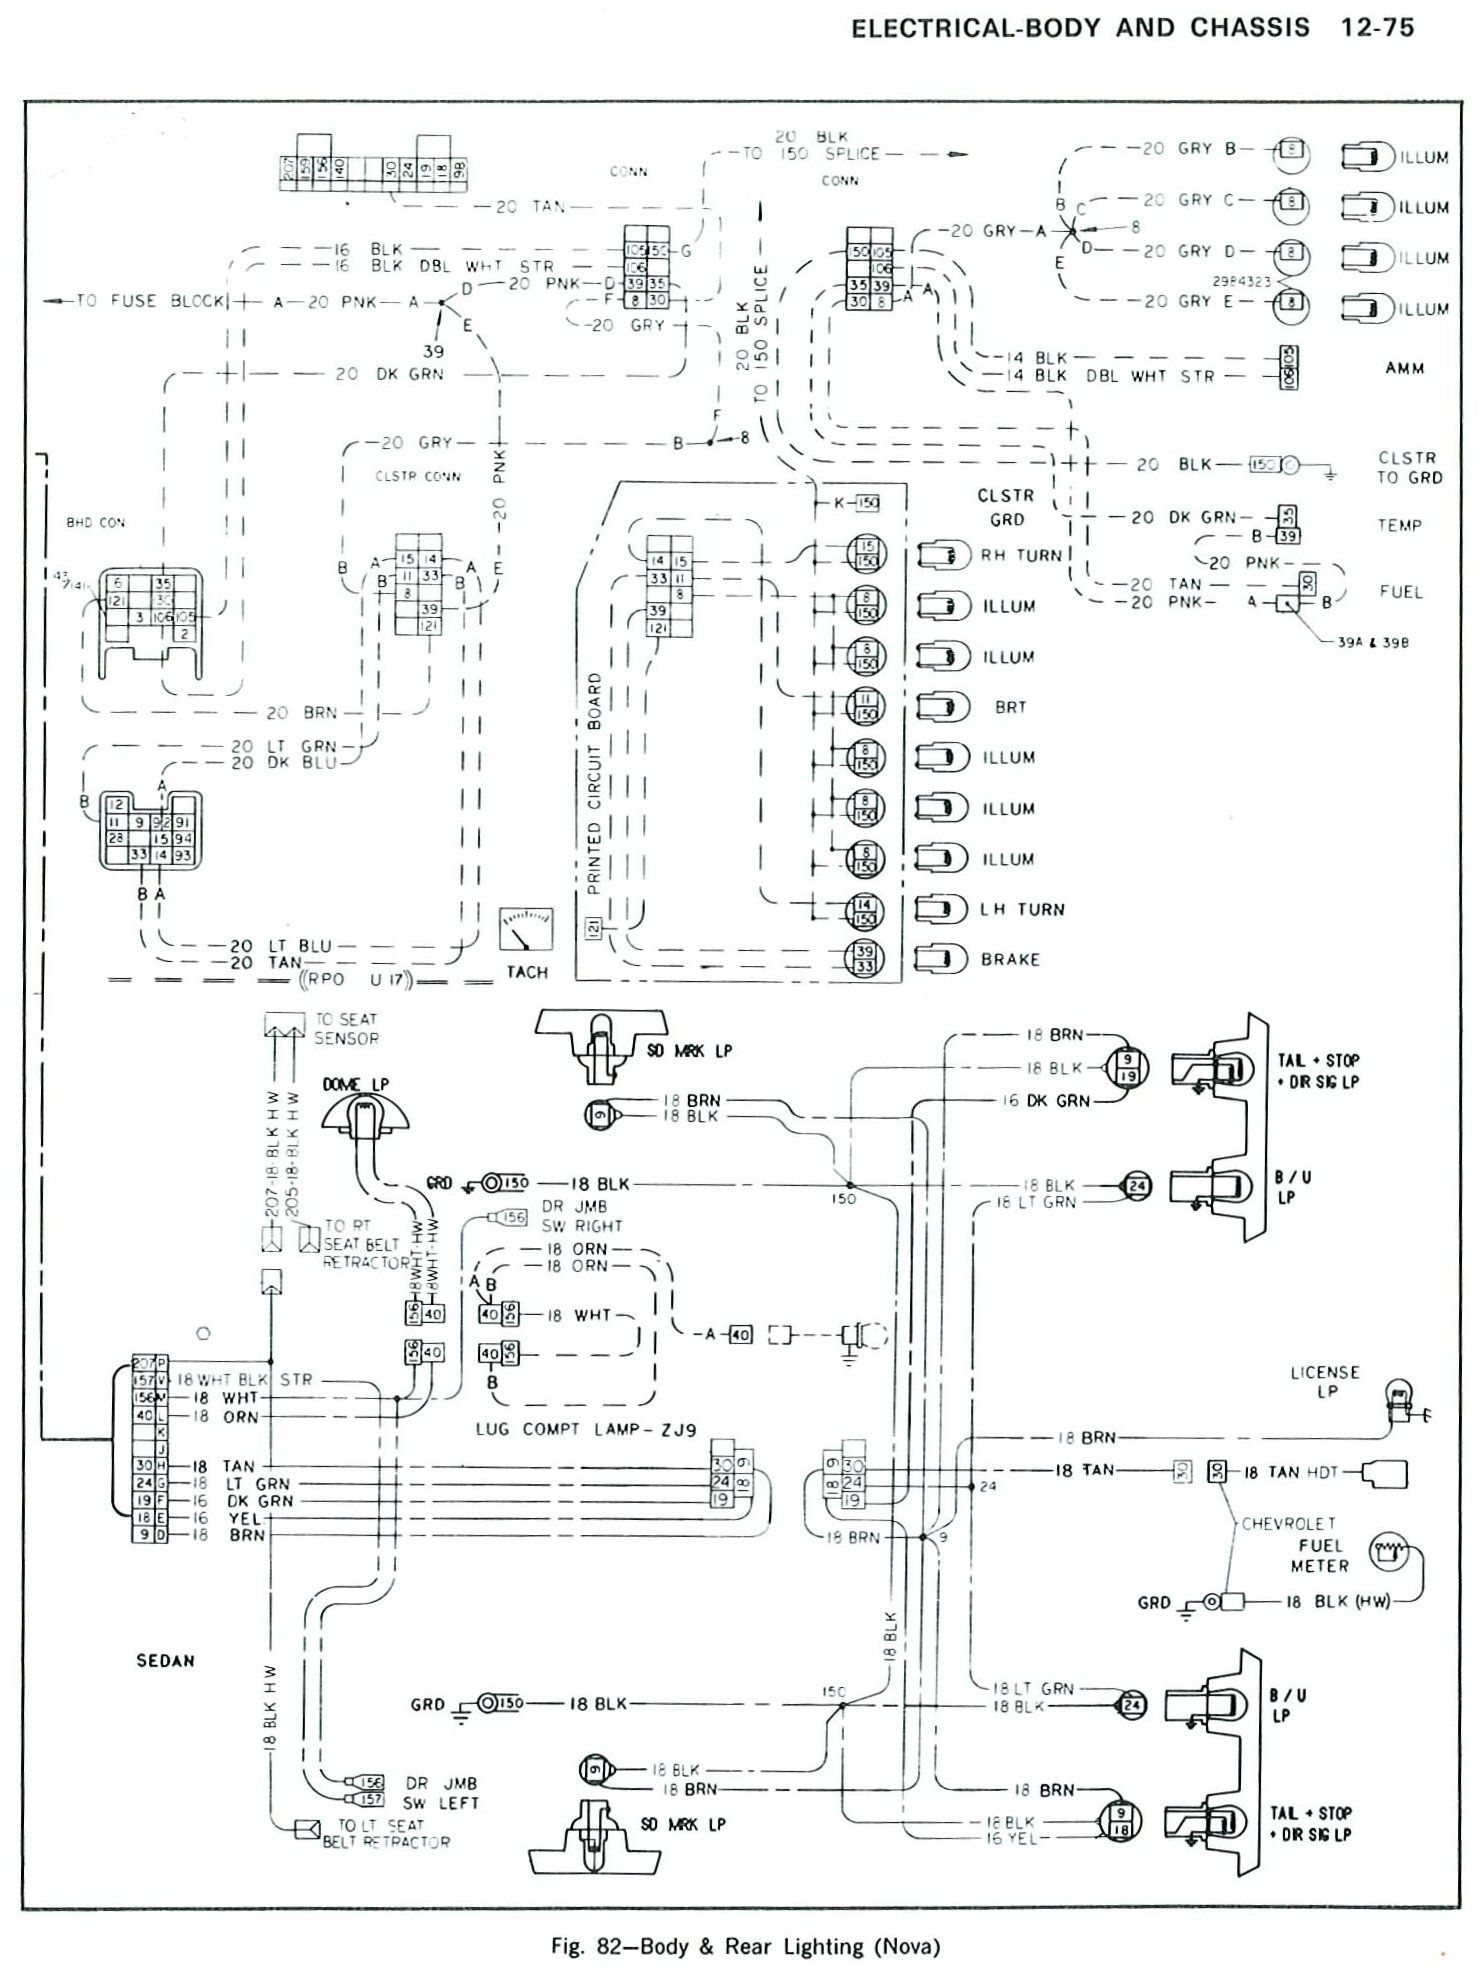 72 chevy truck wiring diagram free download free 1971 chevy truck wiring diagram 85 chevy truck wiring diagram | ... looking at the wiring ... #9